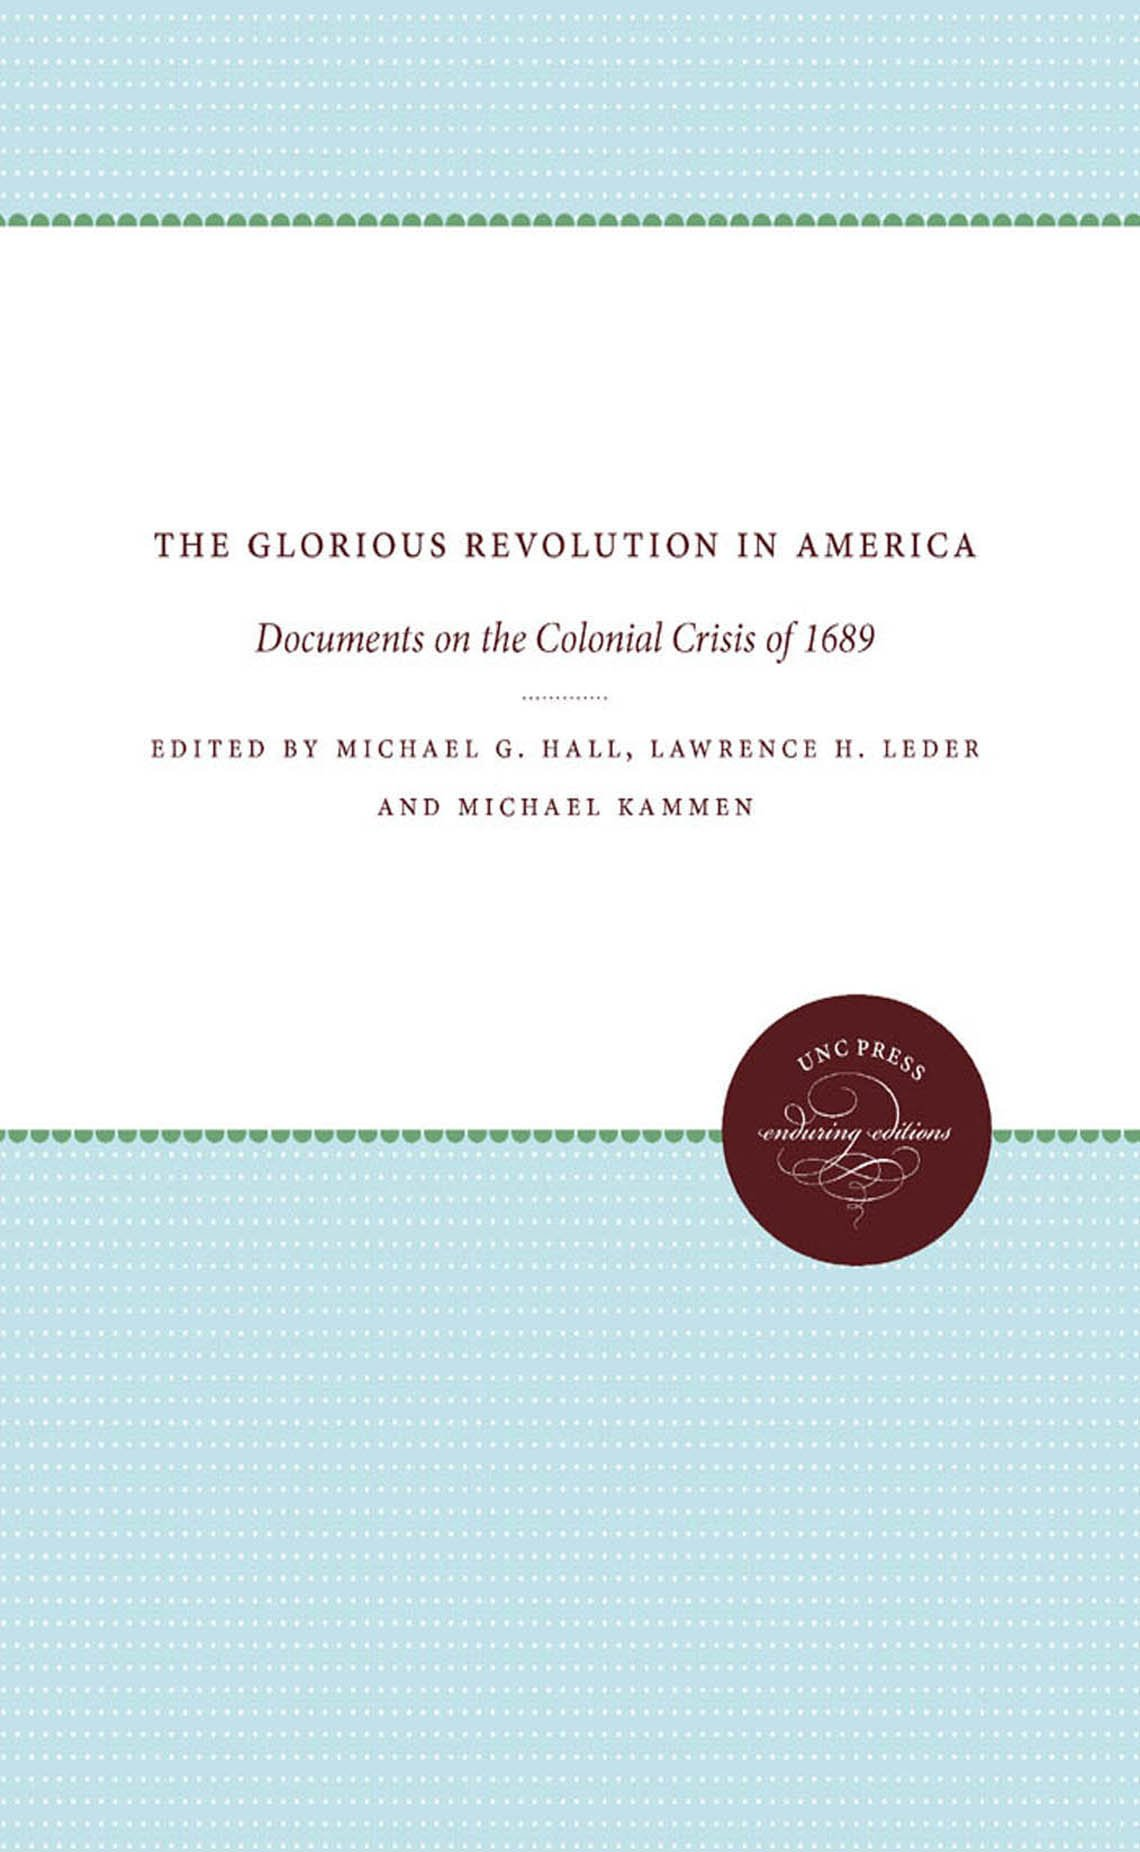 The Glorious Revolution in America: Documents on the Colonial Crisis of 1689 (Published by the Omohundro Institute of Early American History and Culture and the University of North Carolina Press) PDF